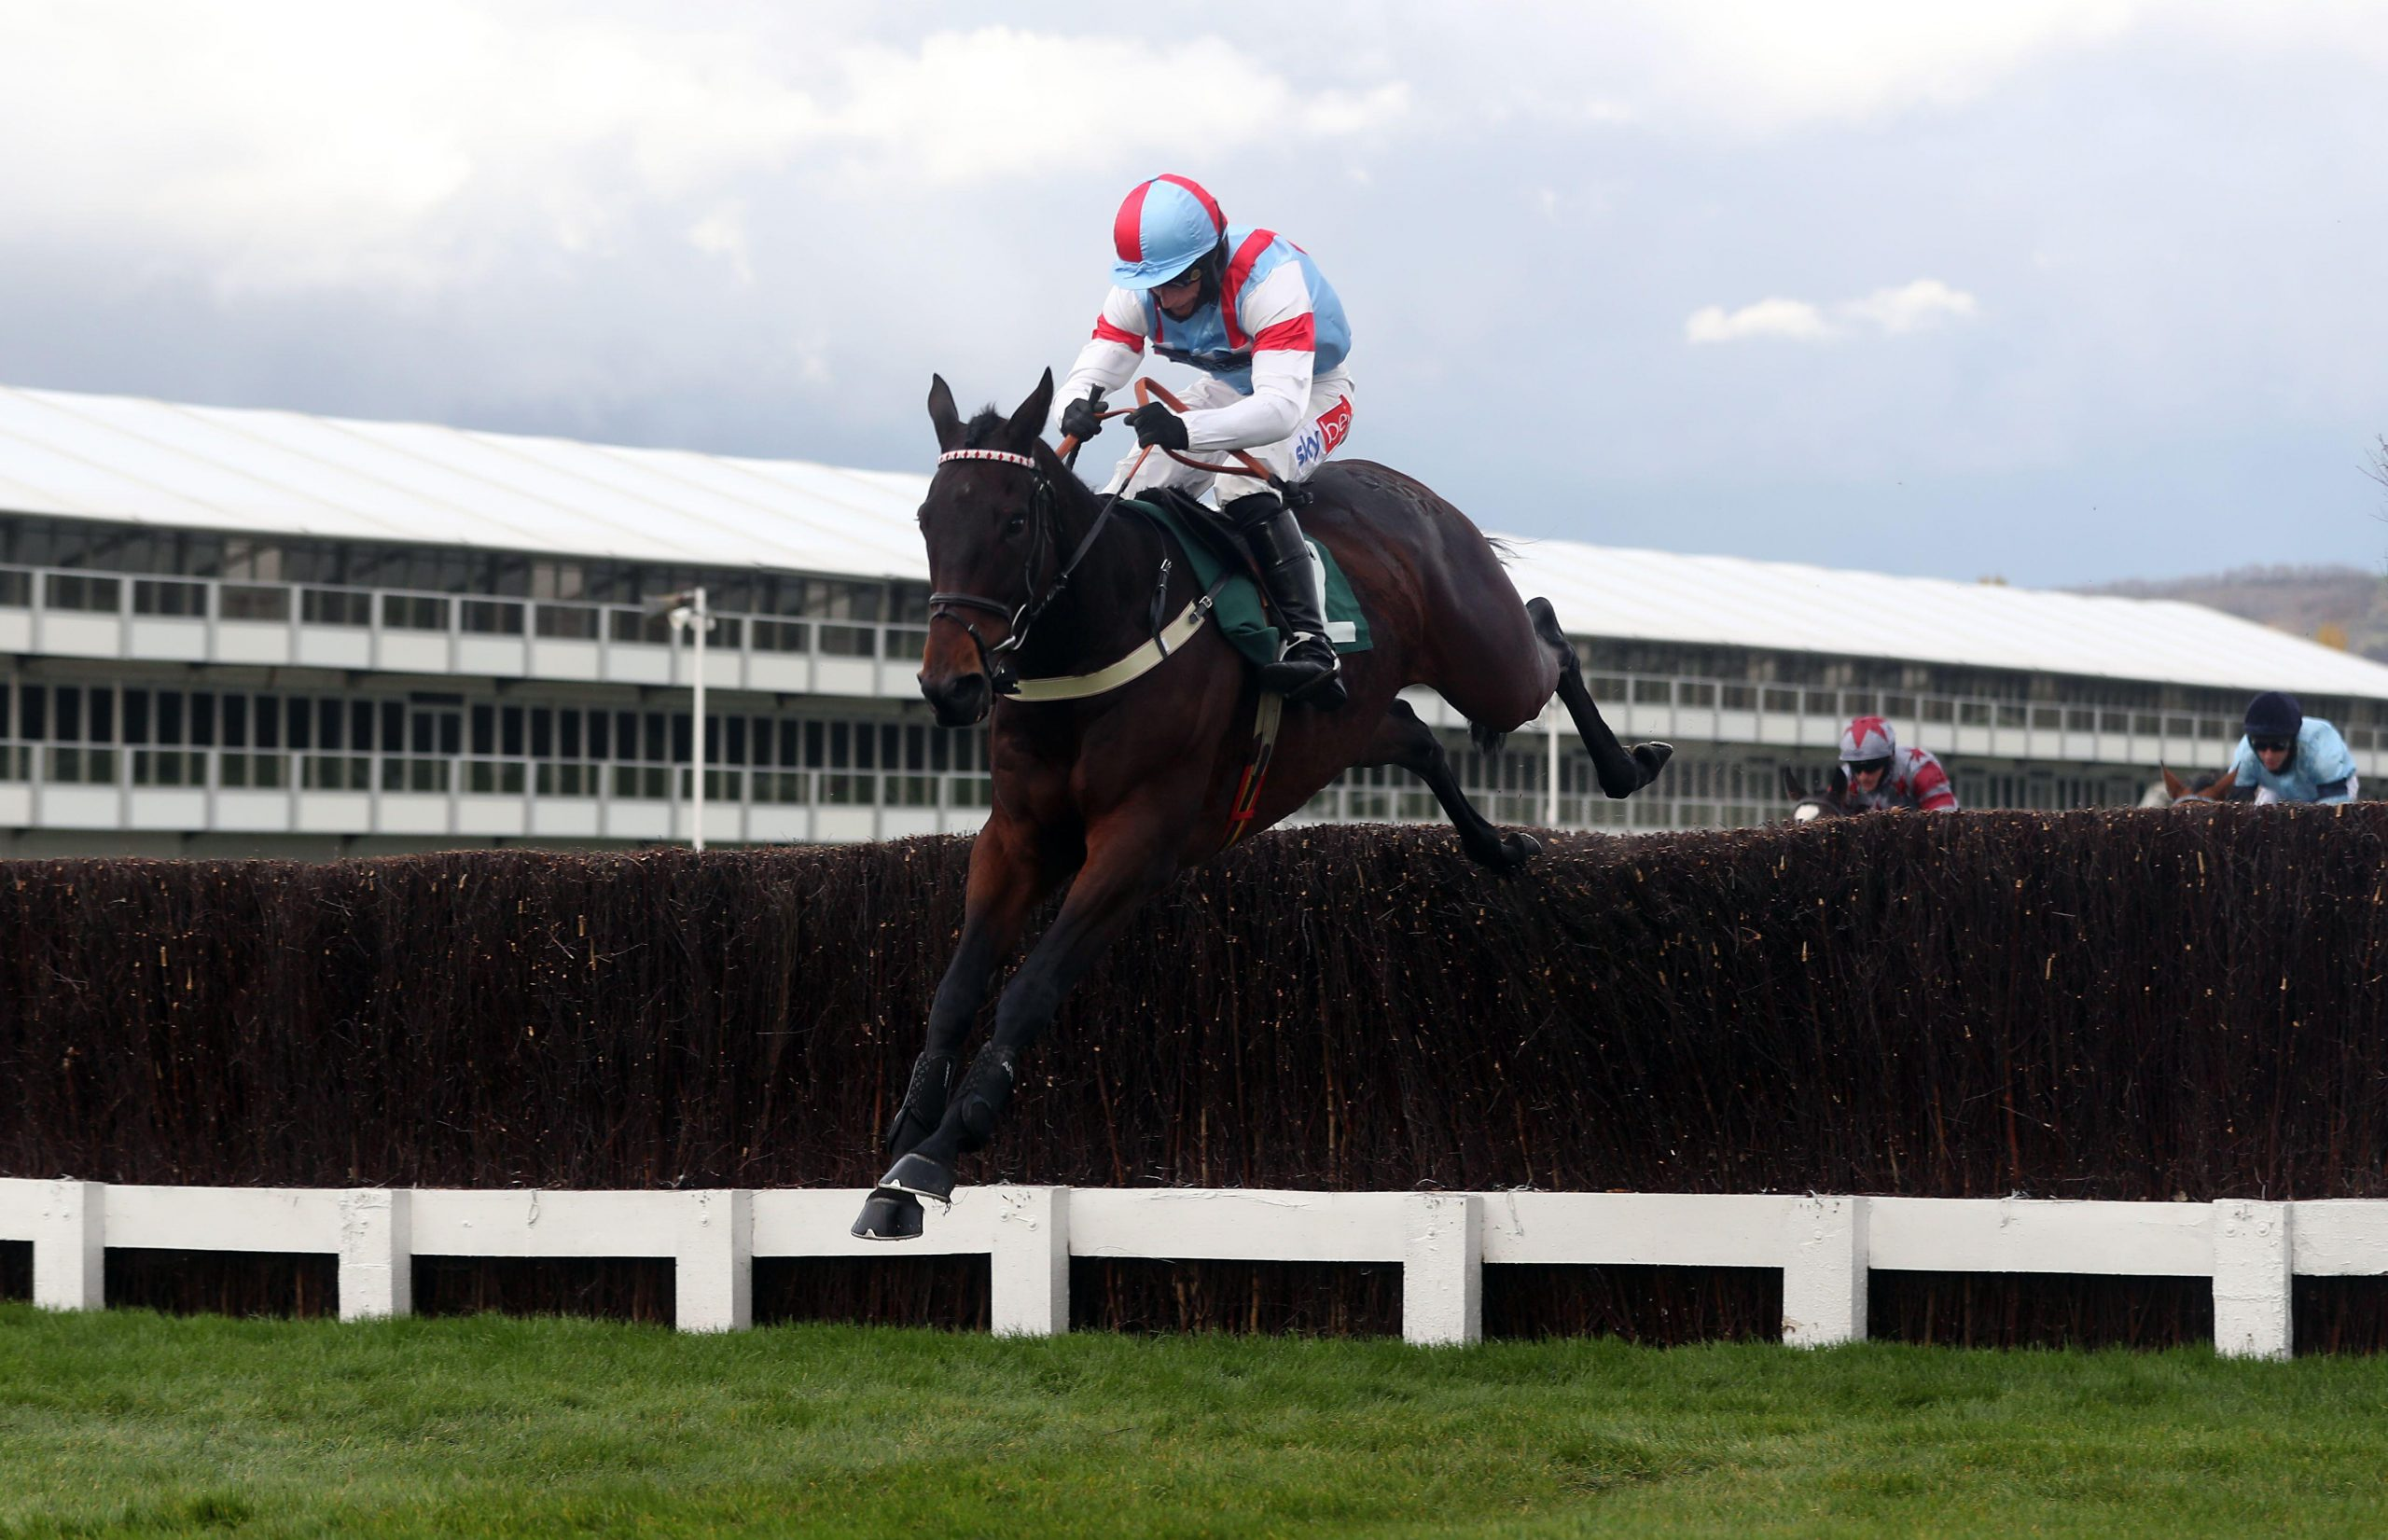 2D7JHF2 Rouge Vif ridden by jockey Daryl Jacob clears a fence on the way to winning the (Old) Bentley Flying Spur Handicap Chase at Cheltenham Racecourse.